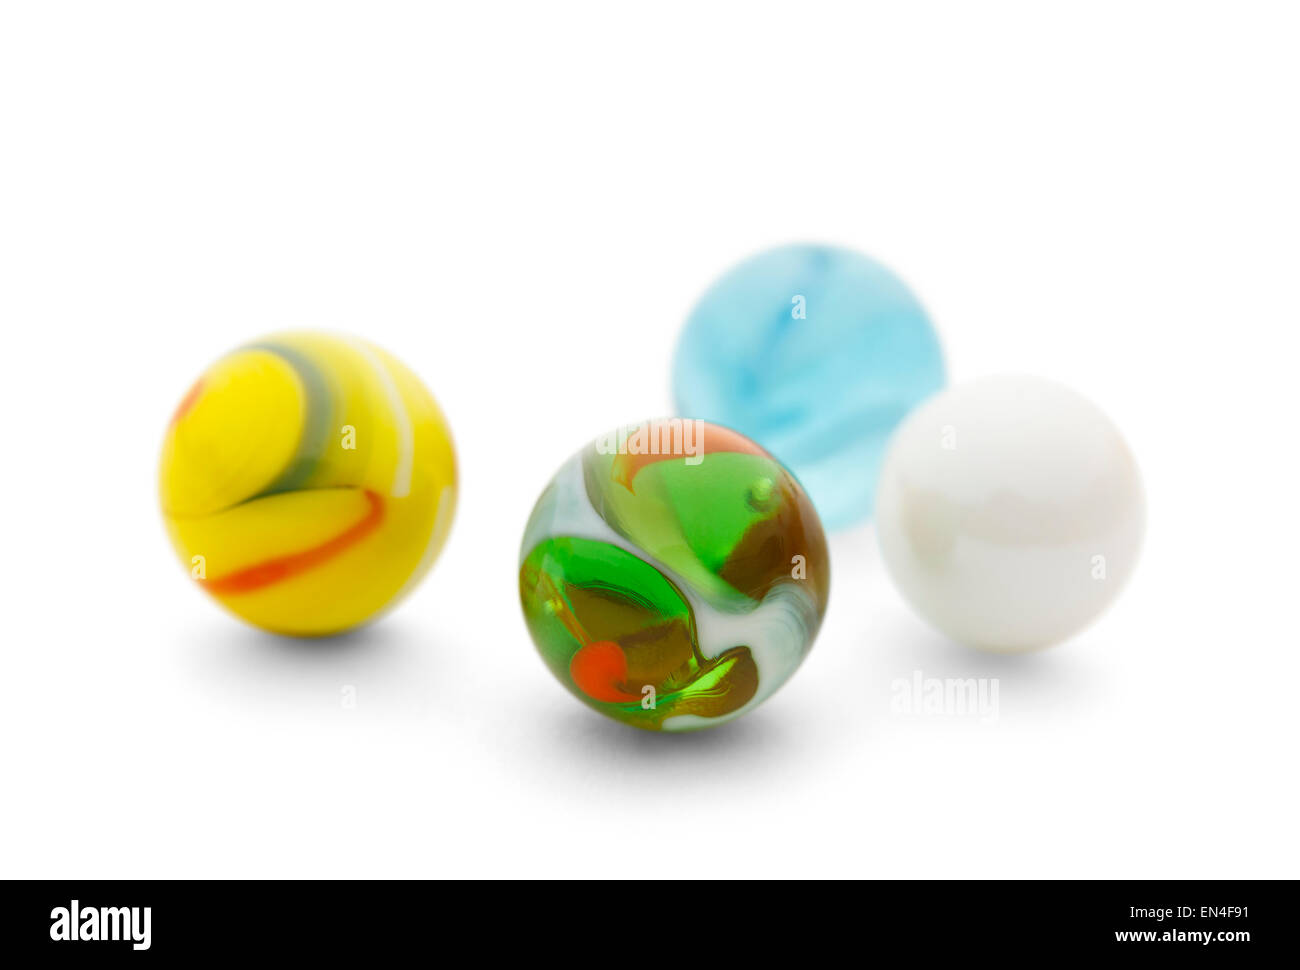 Four Toy Glass Marbles Isolated on a White Background. - Stock Image